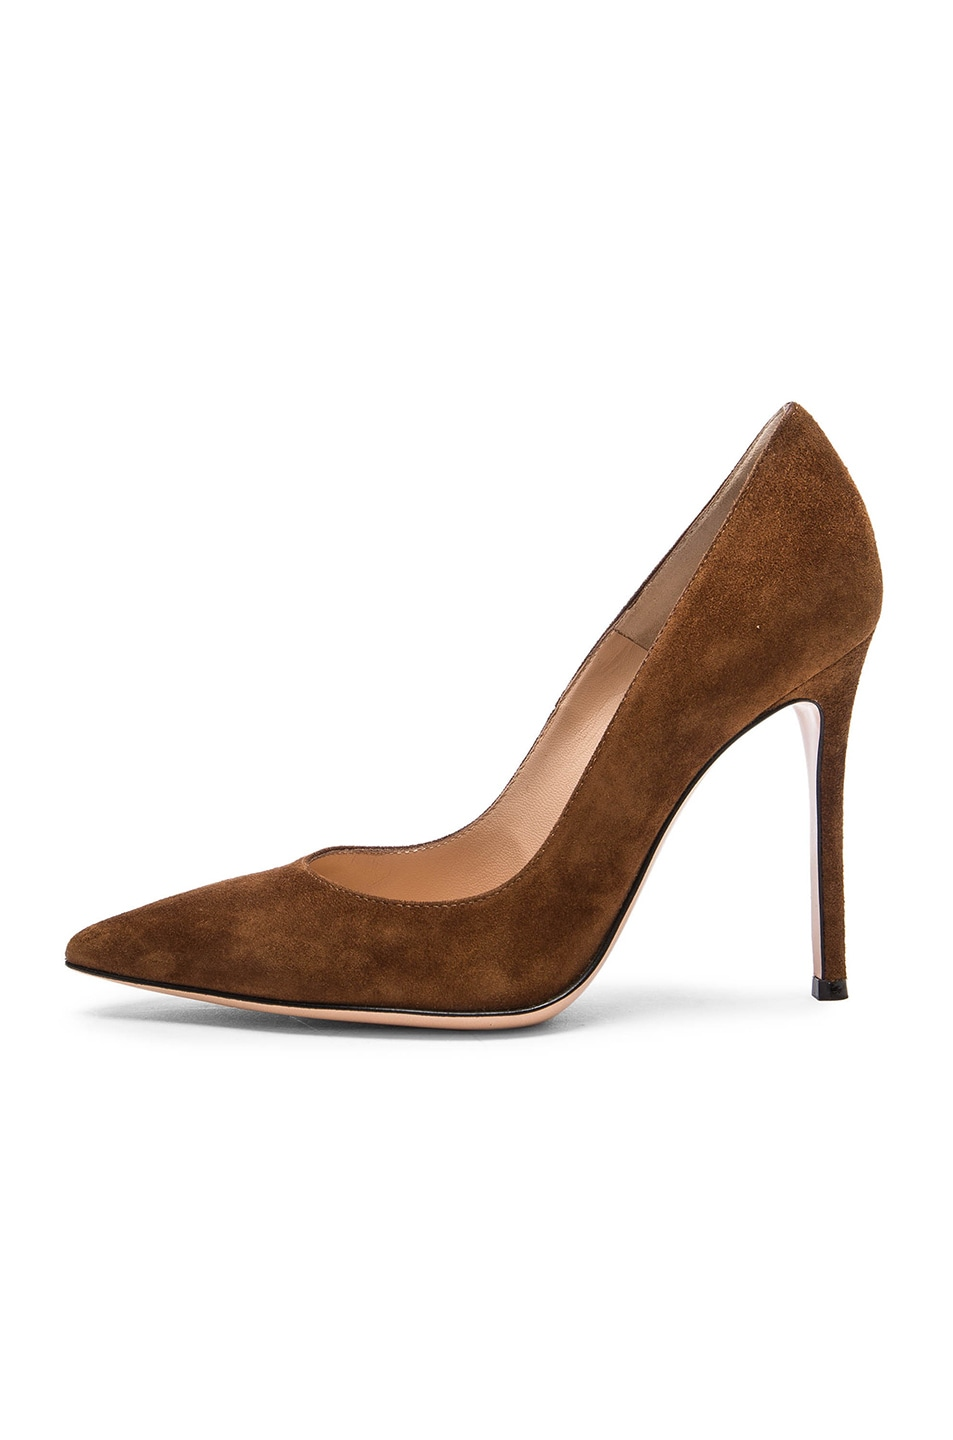 Image 5 of Gianvito Rossi Suede Pumps in Texas